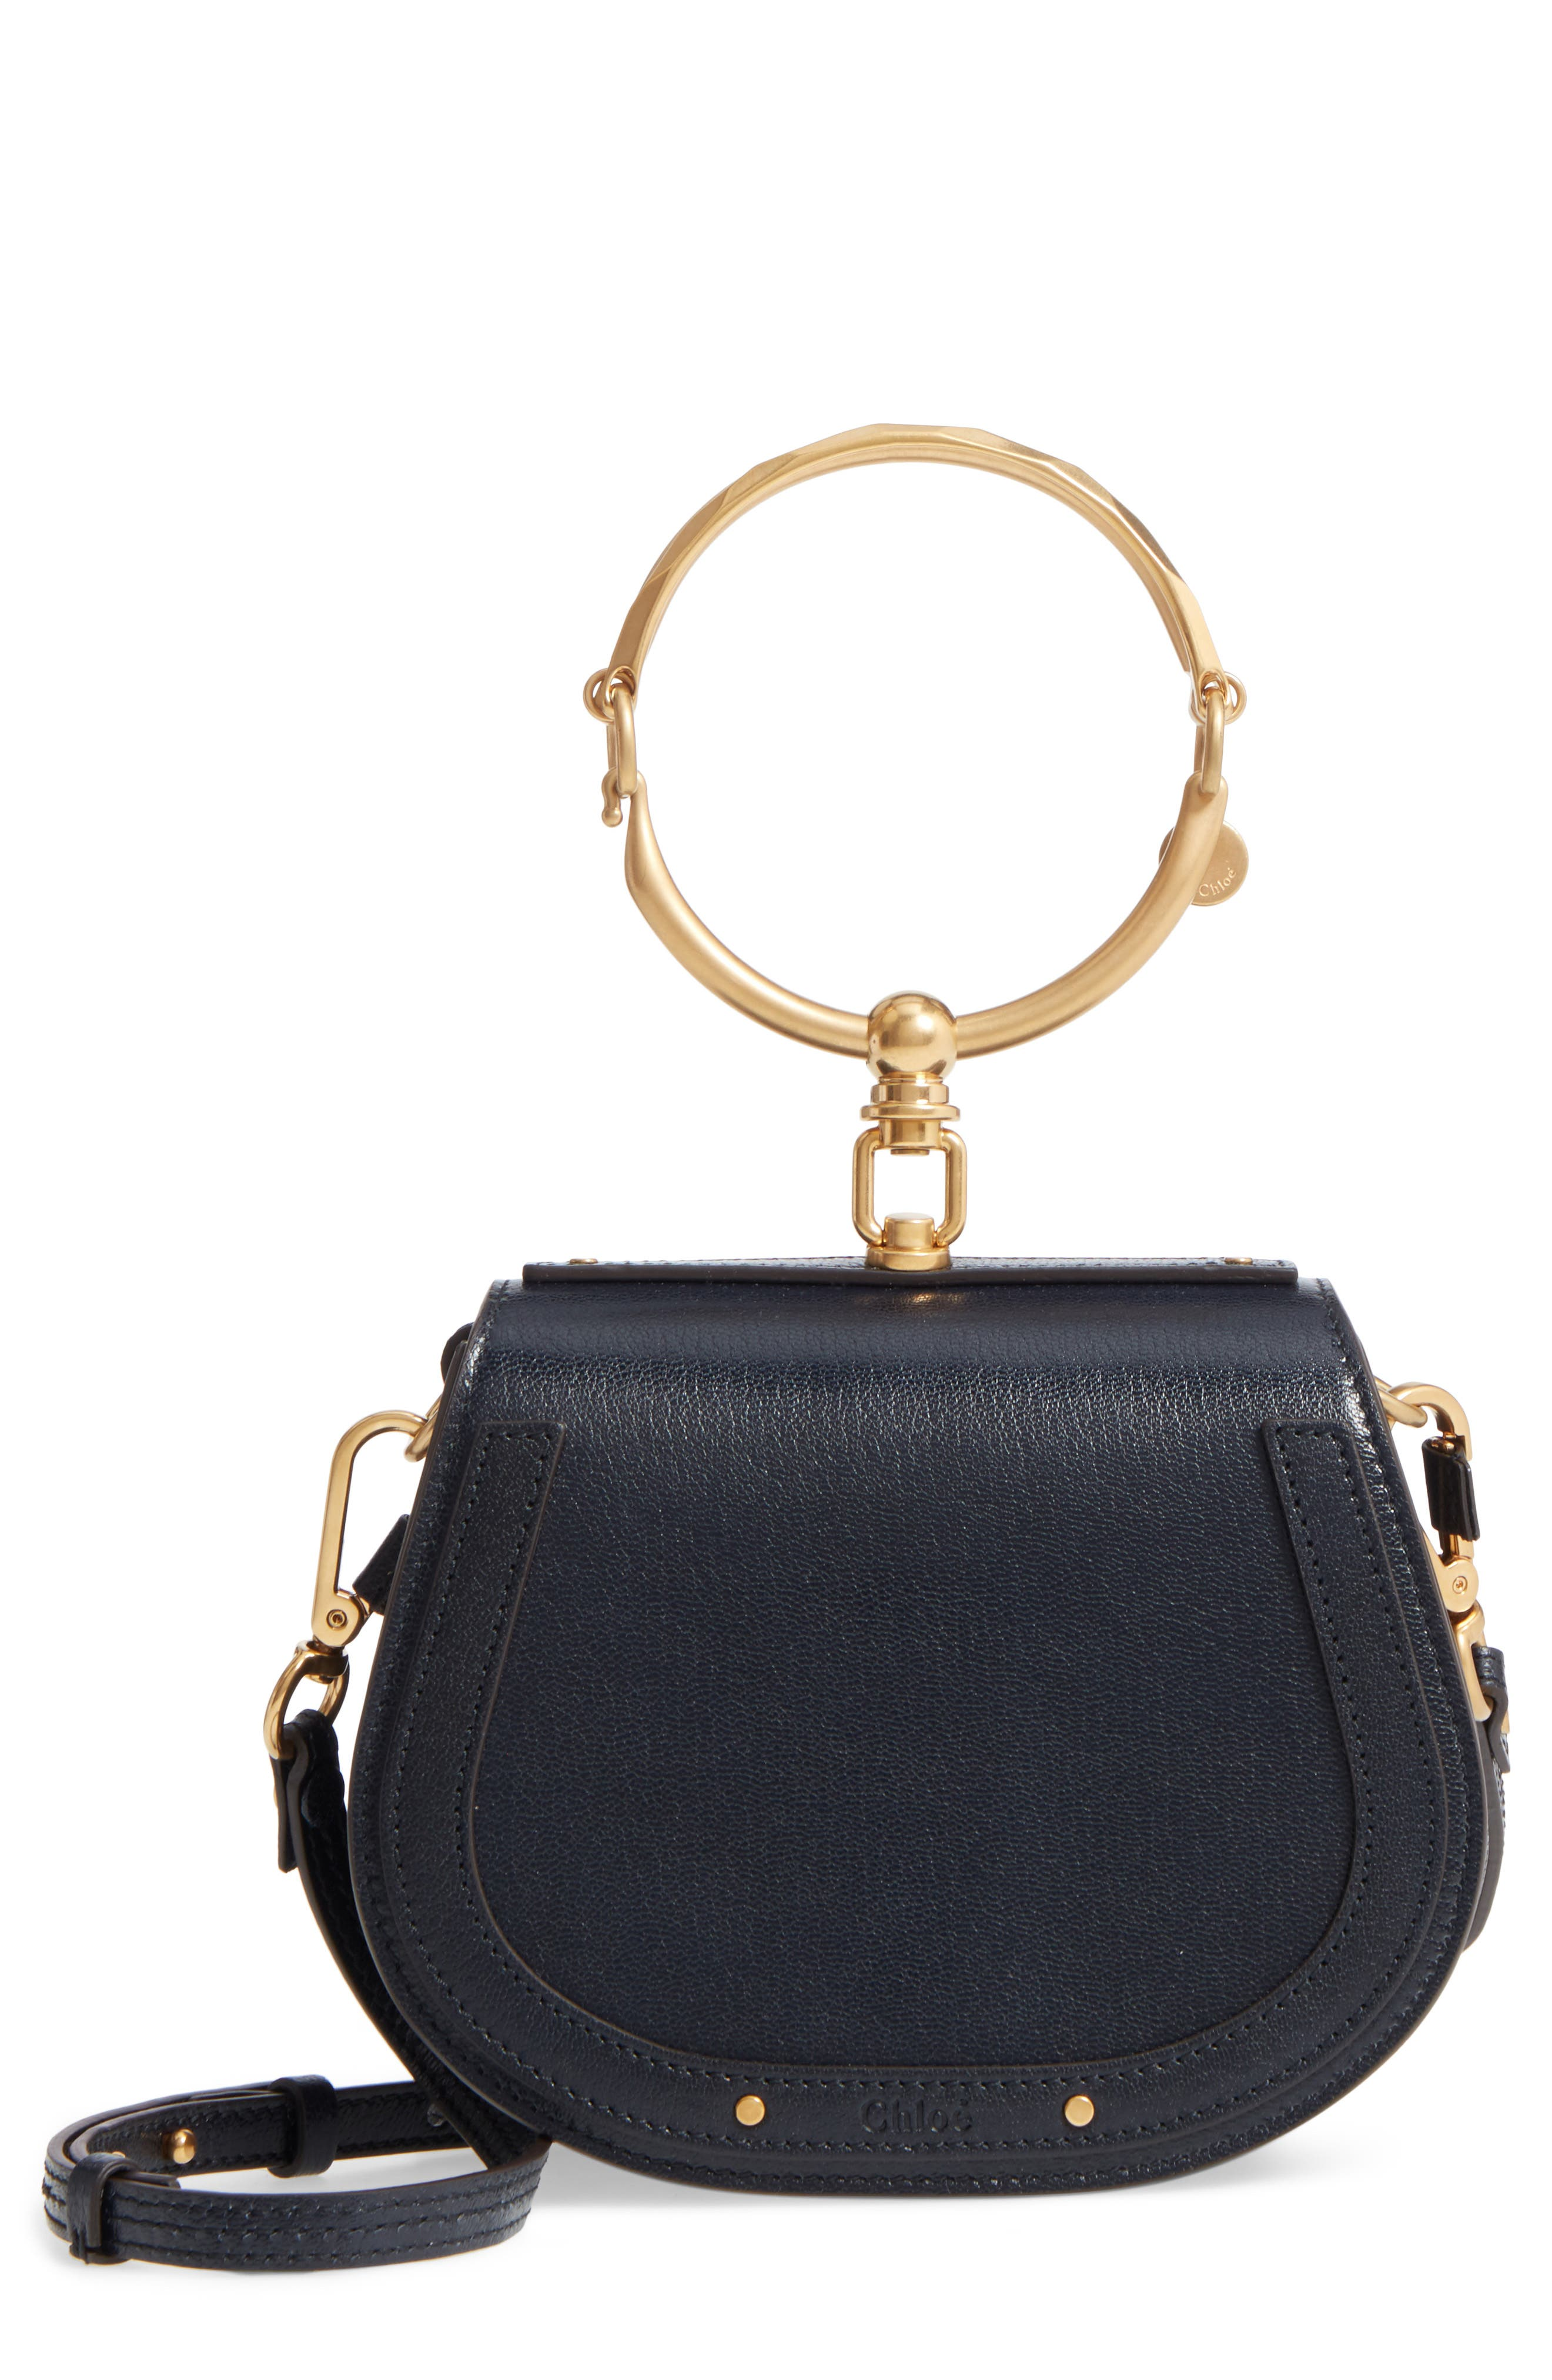 Chloé Small Nile Leather Crossbody Bag